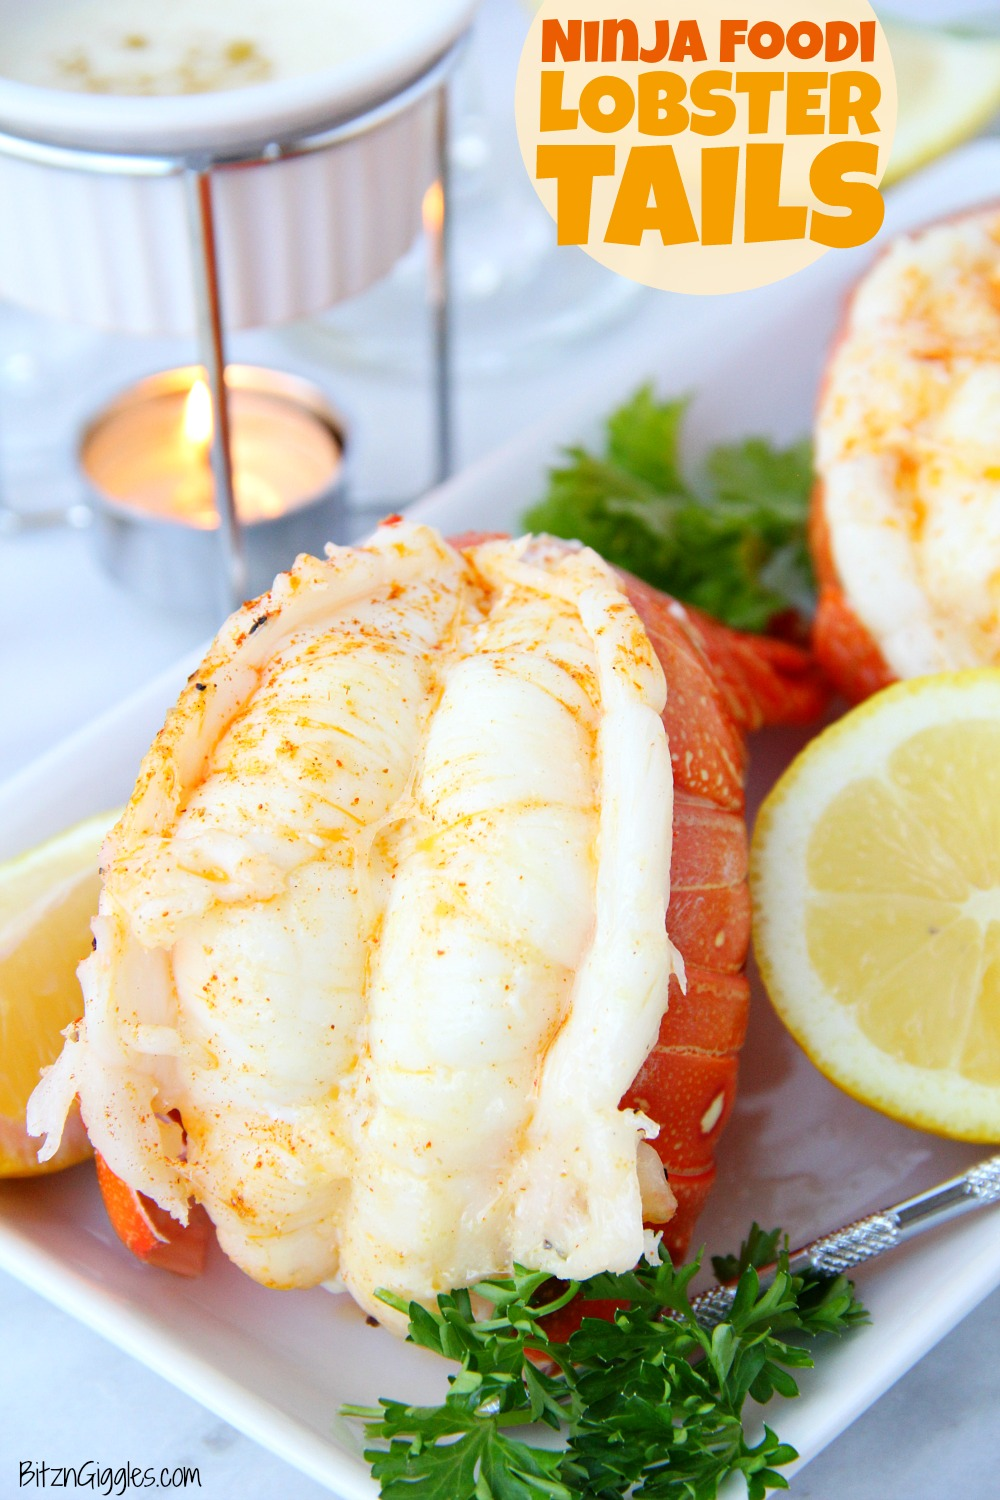 Lobster tails on table with melted butter and wine glass